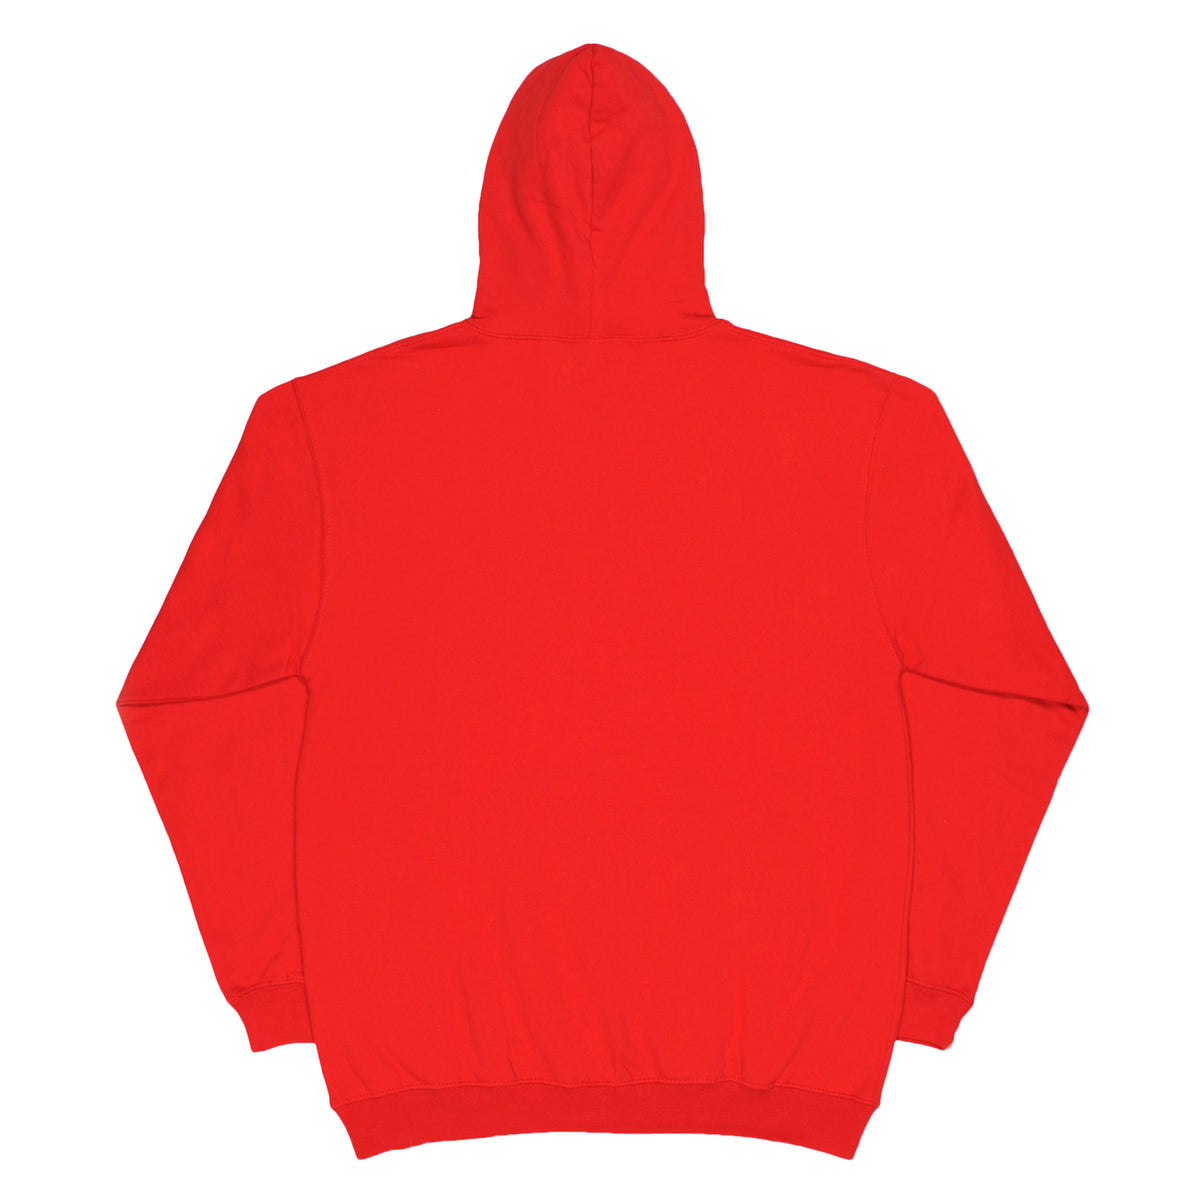 RAVE x ANYWAYS red hoodie - RAVE skateboards